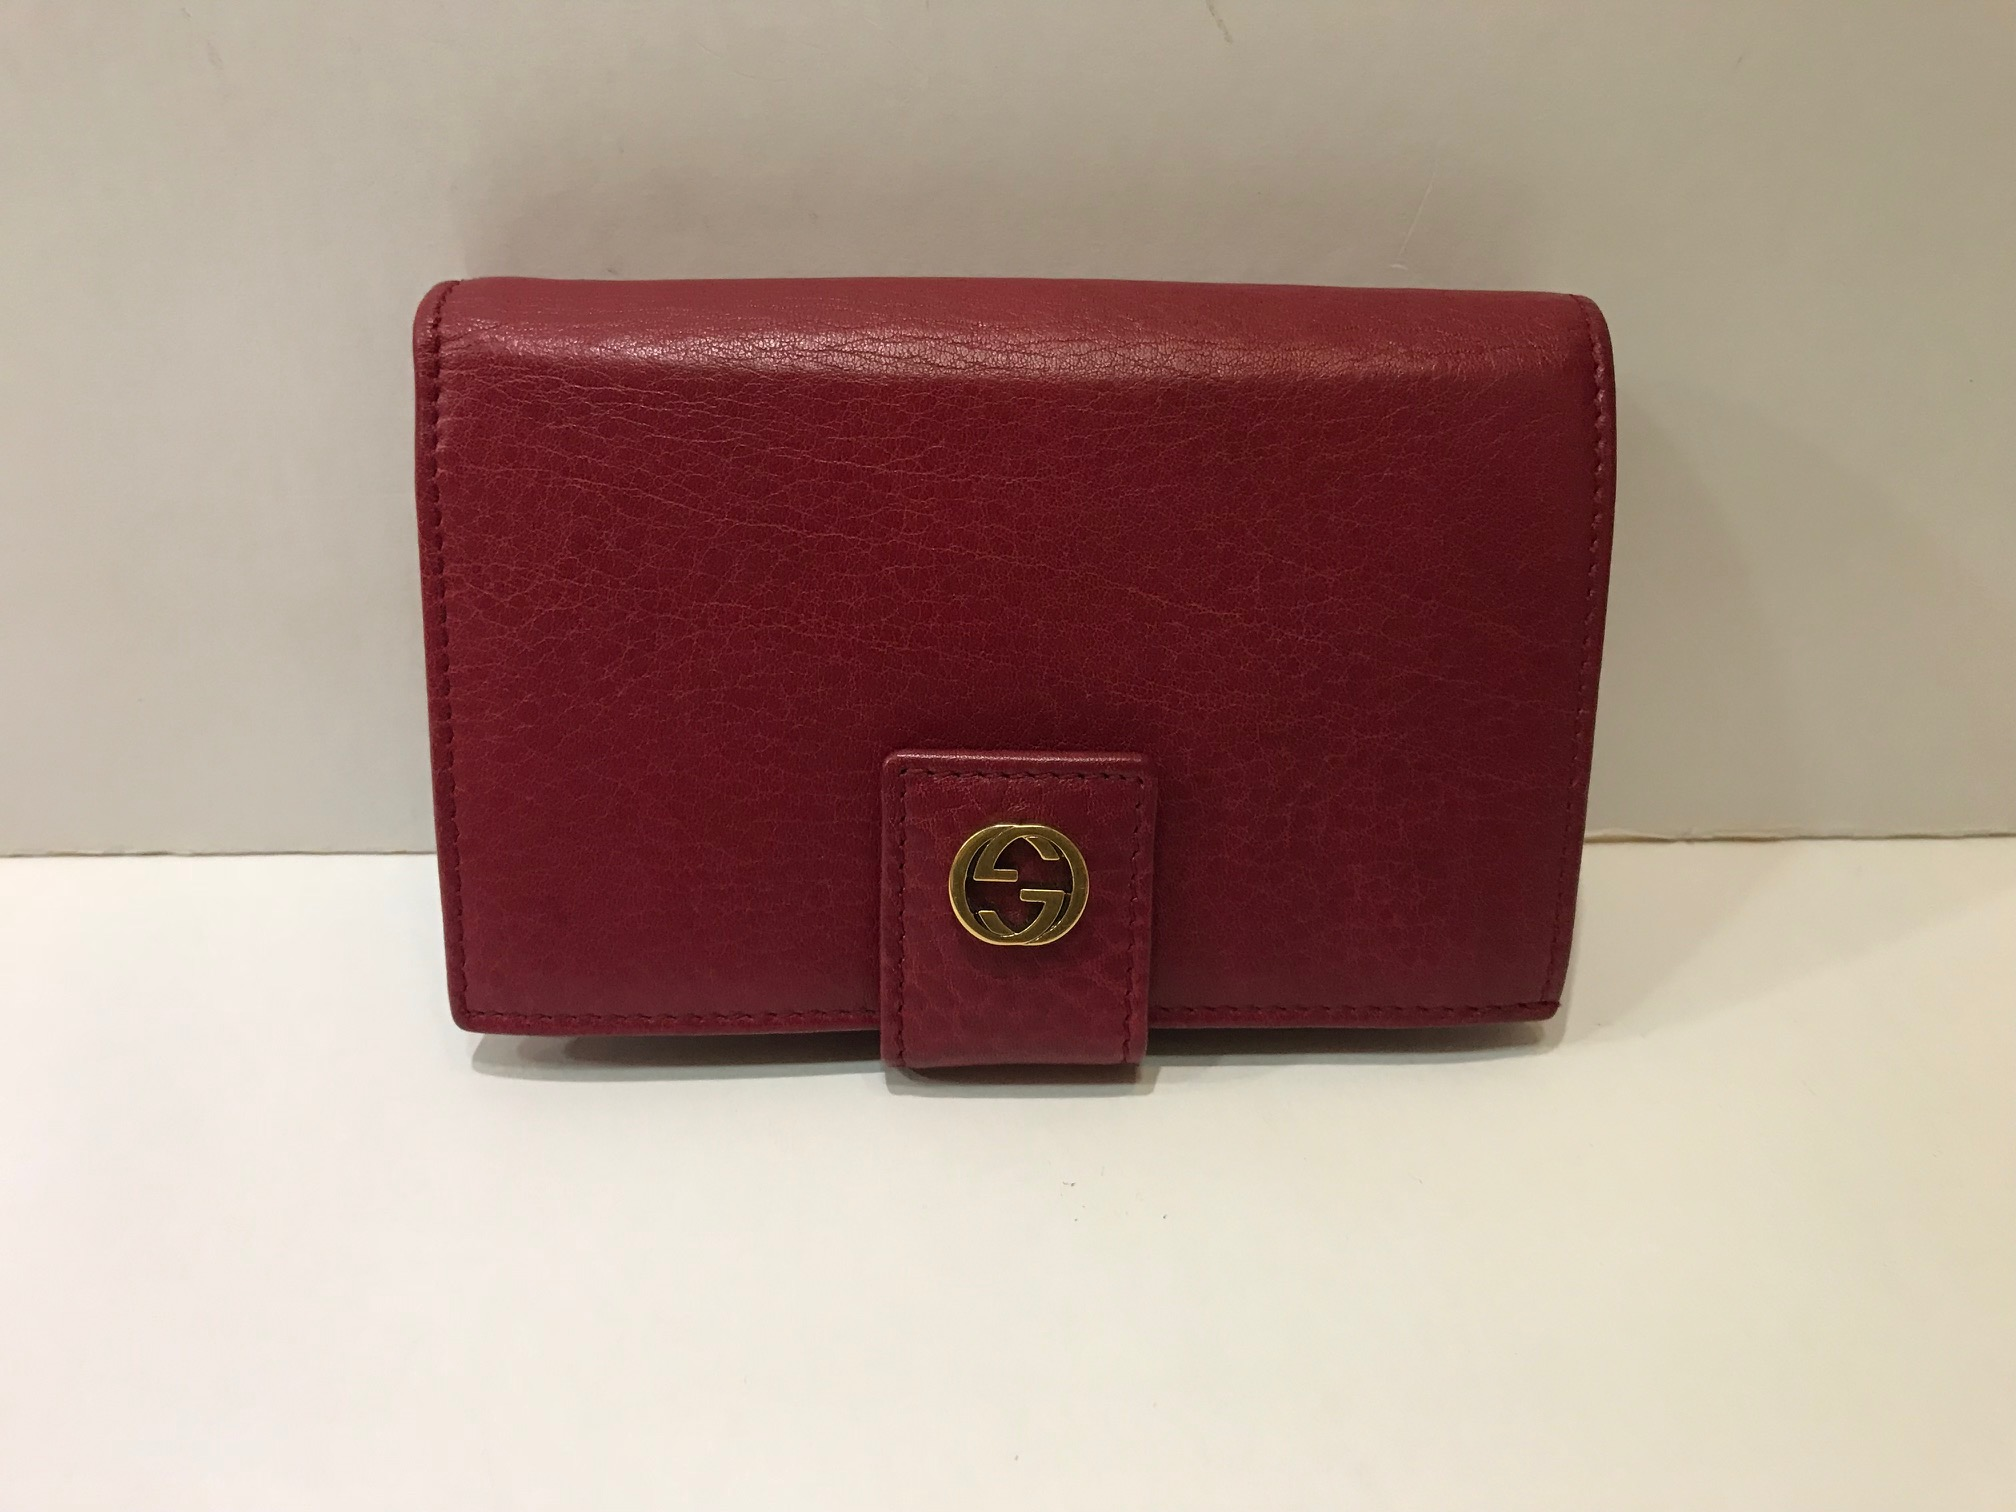 3276e19d45d7 GUCCI LEATHER FRENCH FLAP WALLET Item No:0318/001